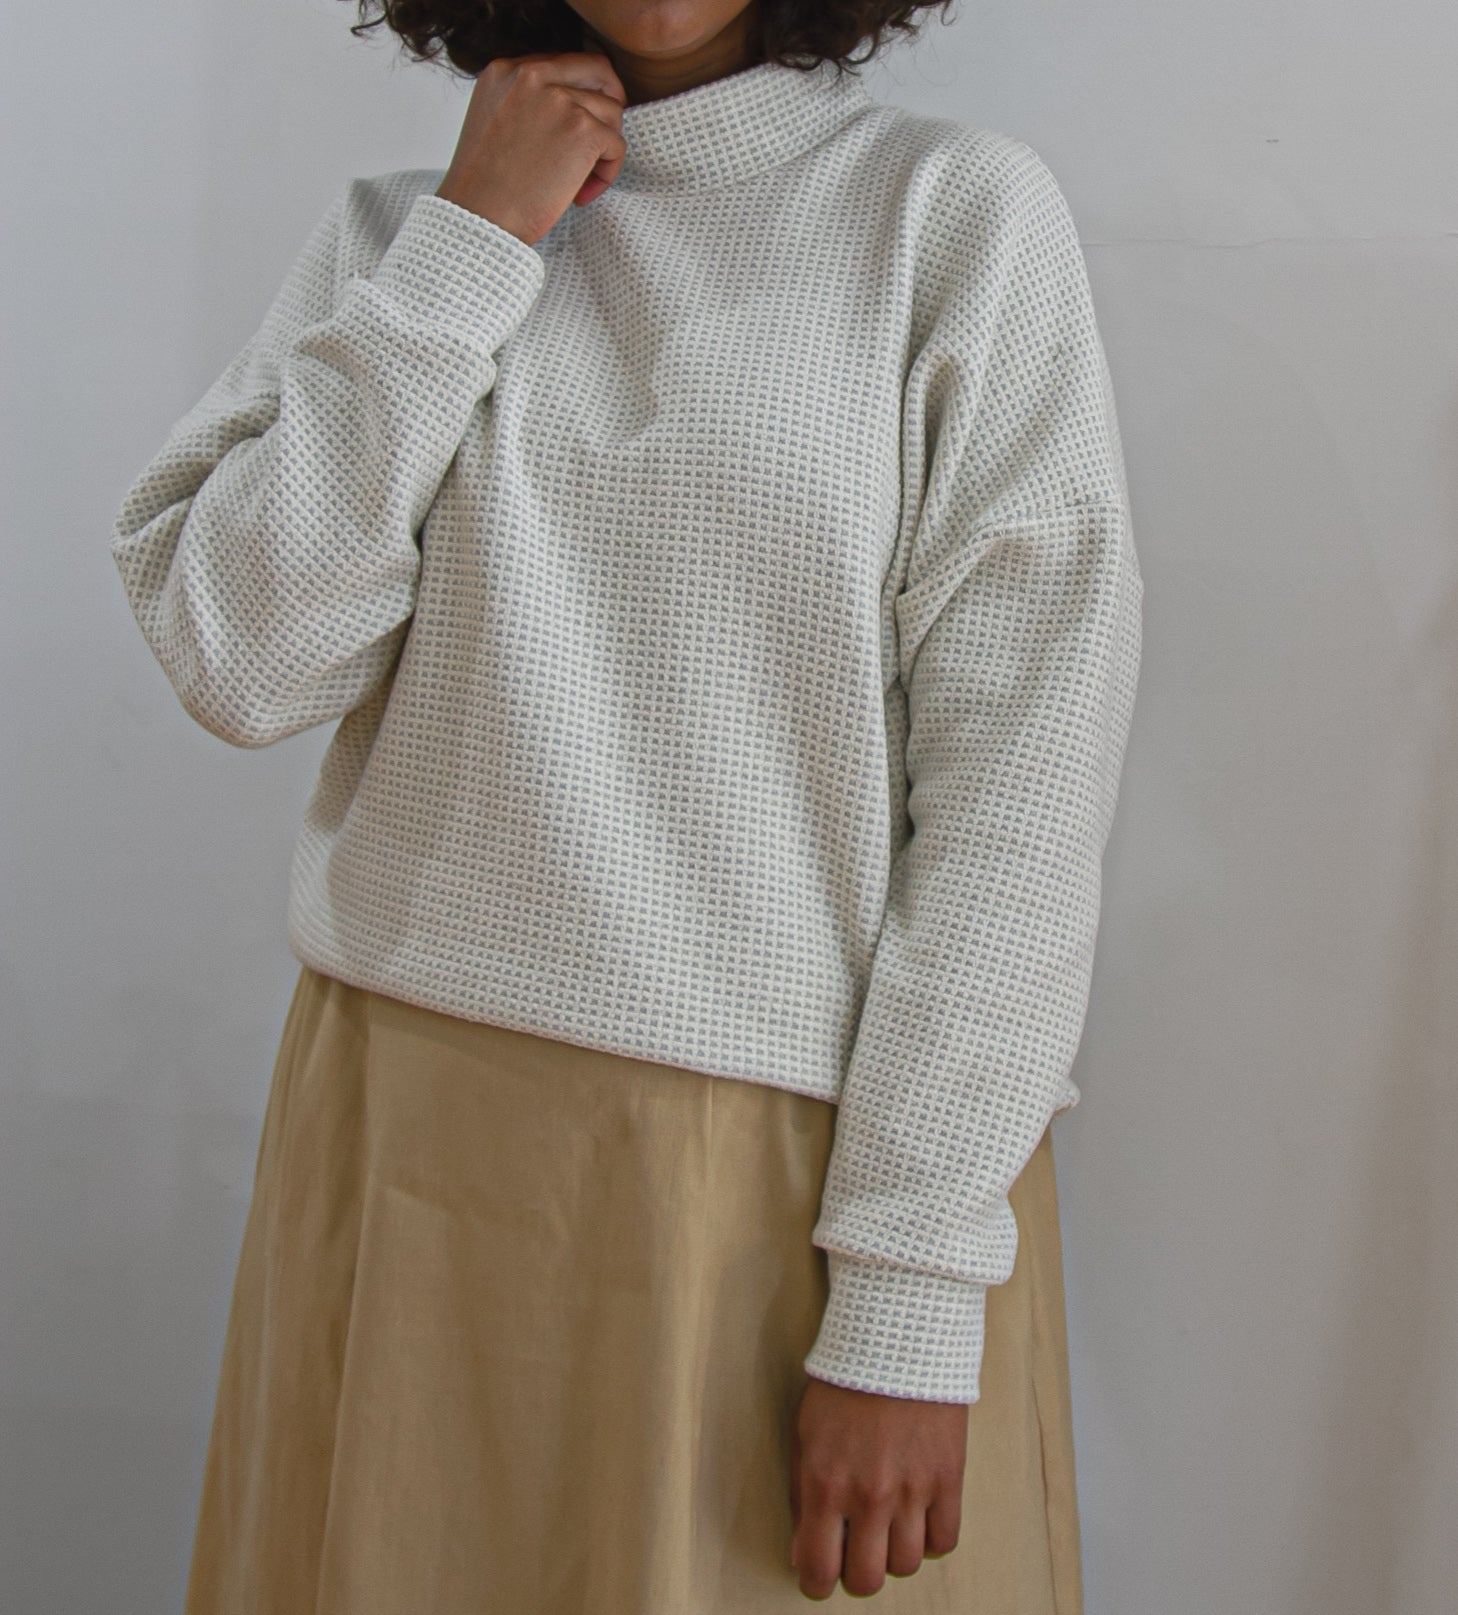 Korajiro Jumper -  Blue + Cream Waffle PRE ORDER SHIPMENT 26TH OF FEB - Ricepaperthelabel